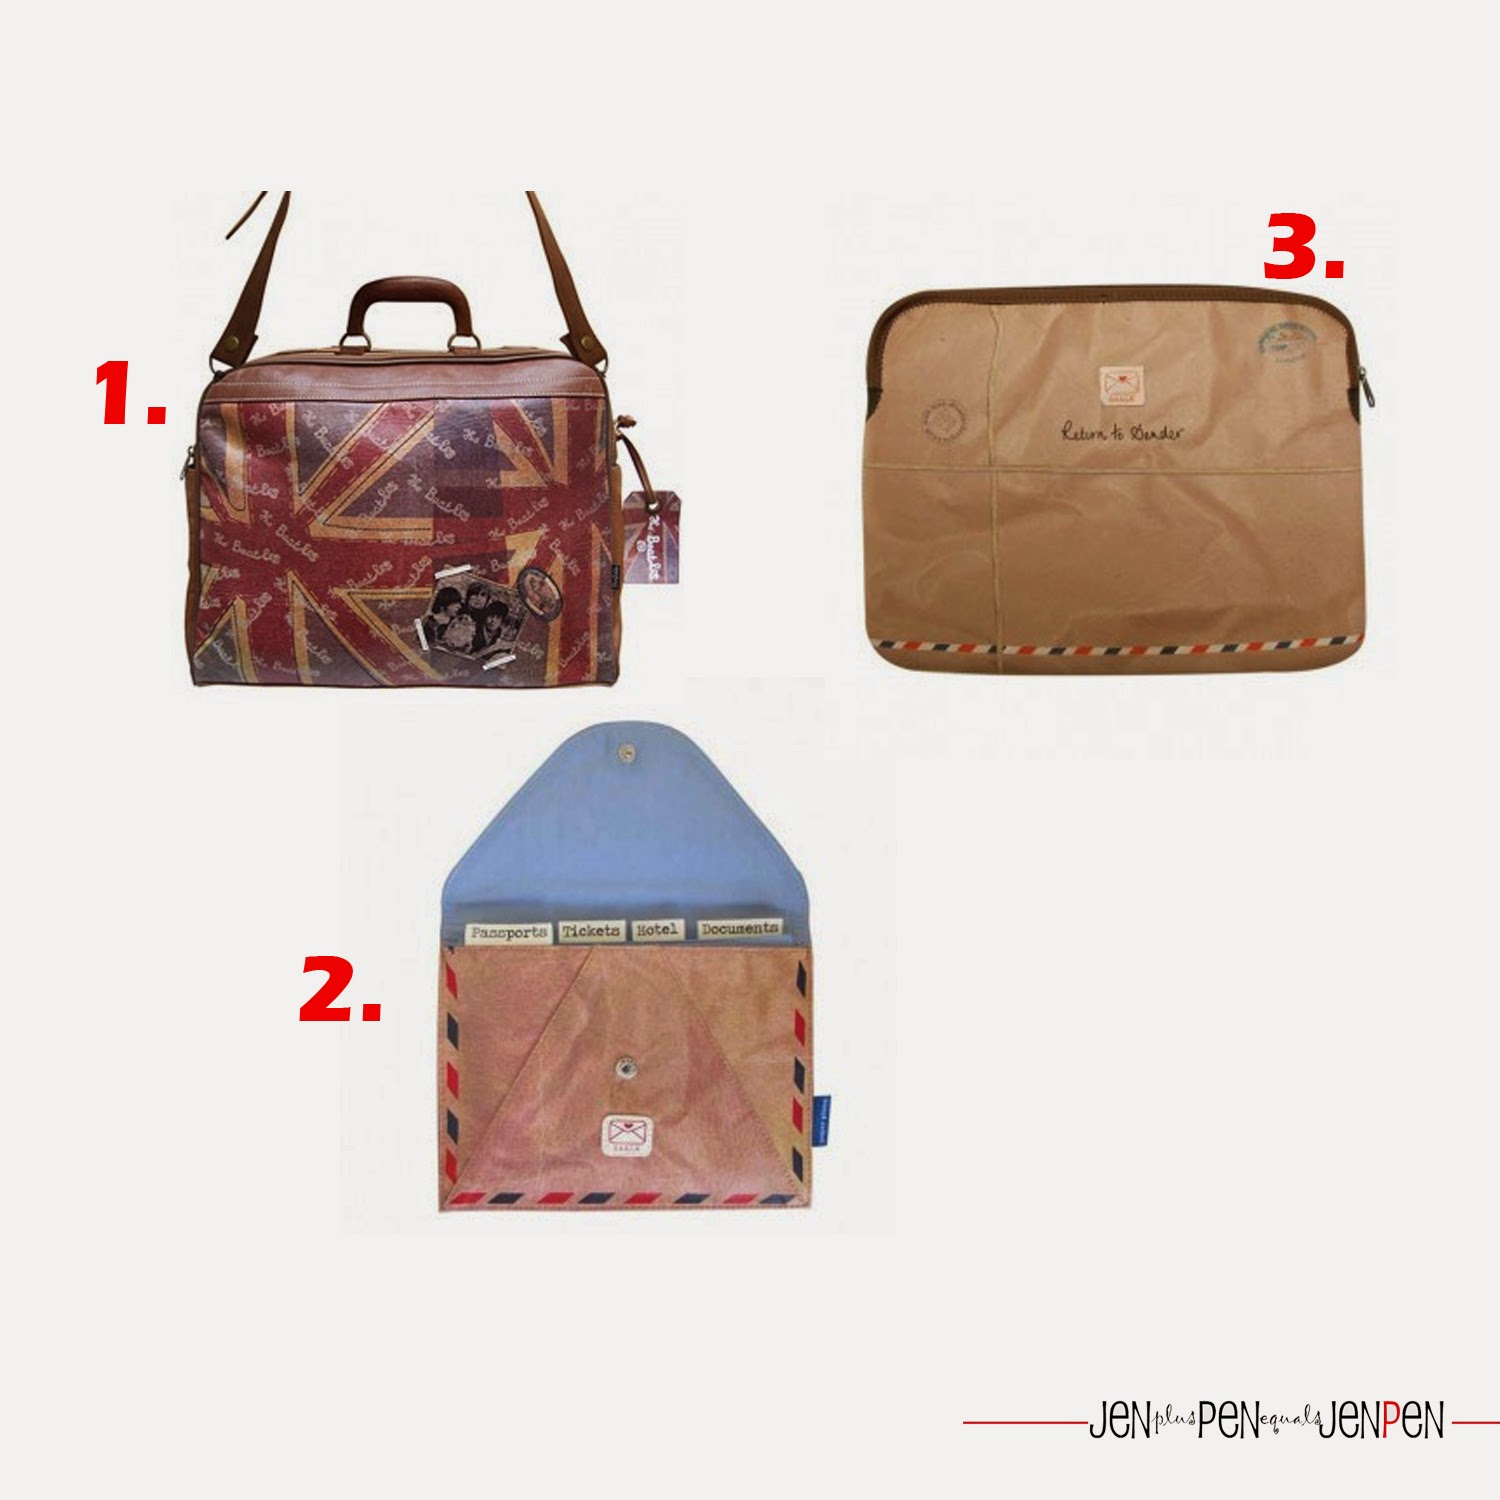 Thursday Travel : Travel accessories